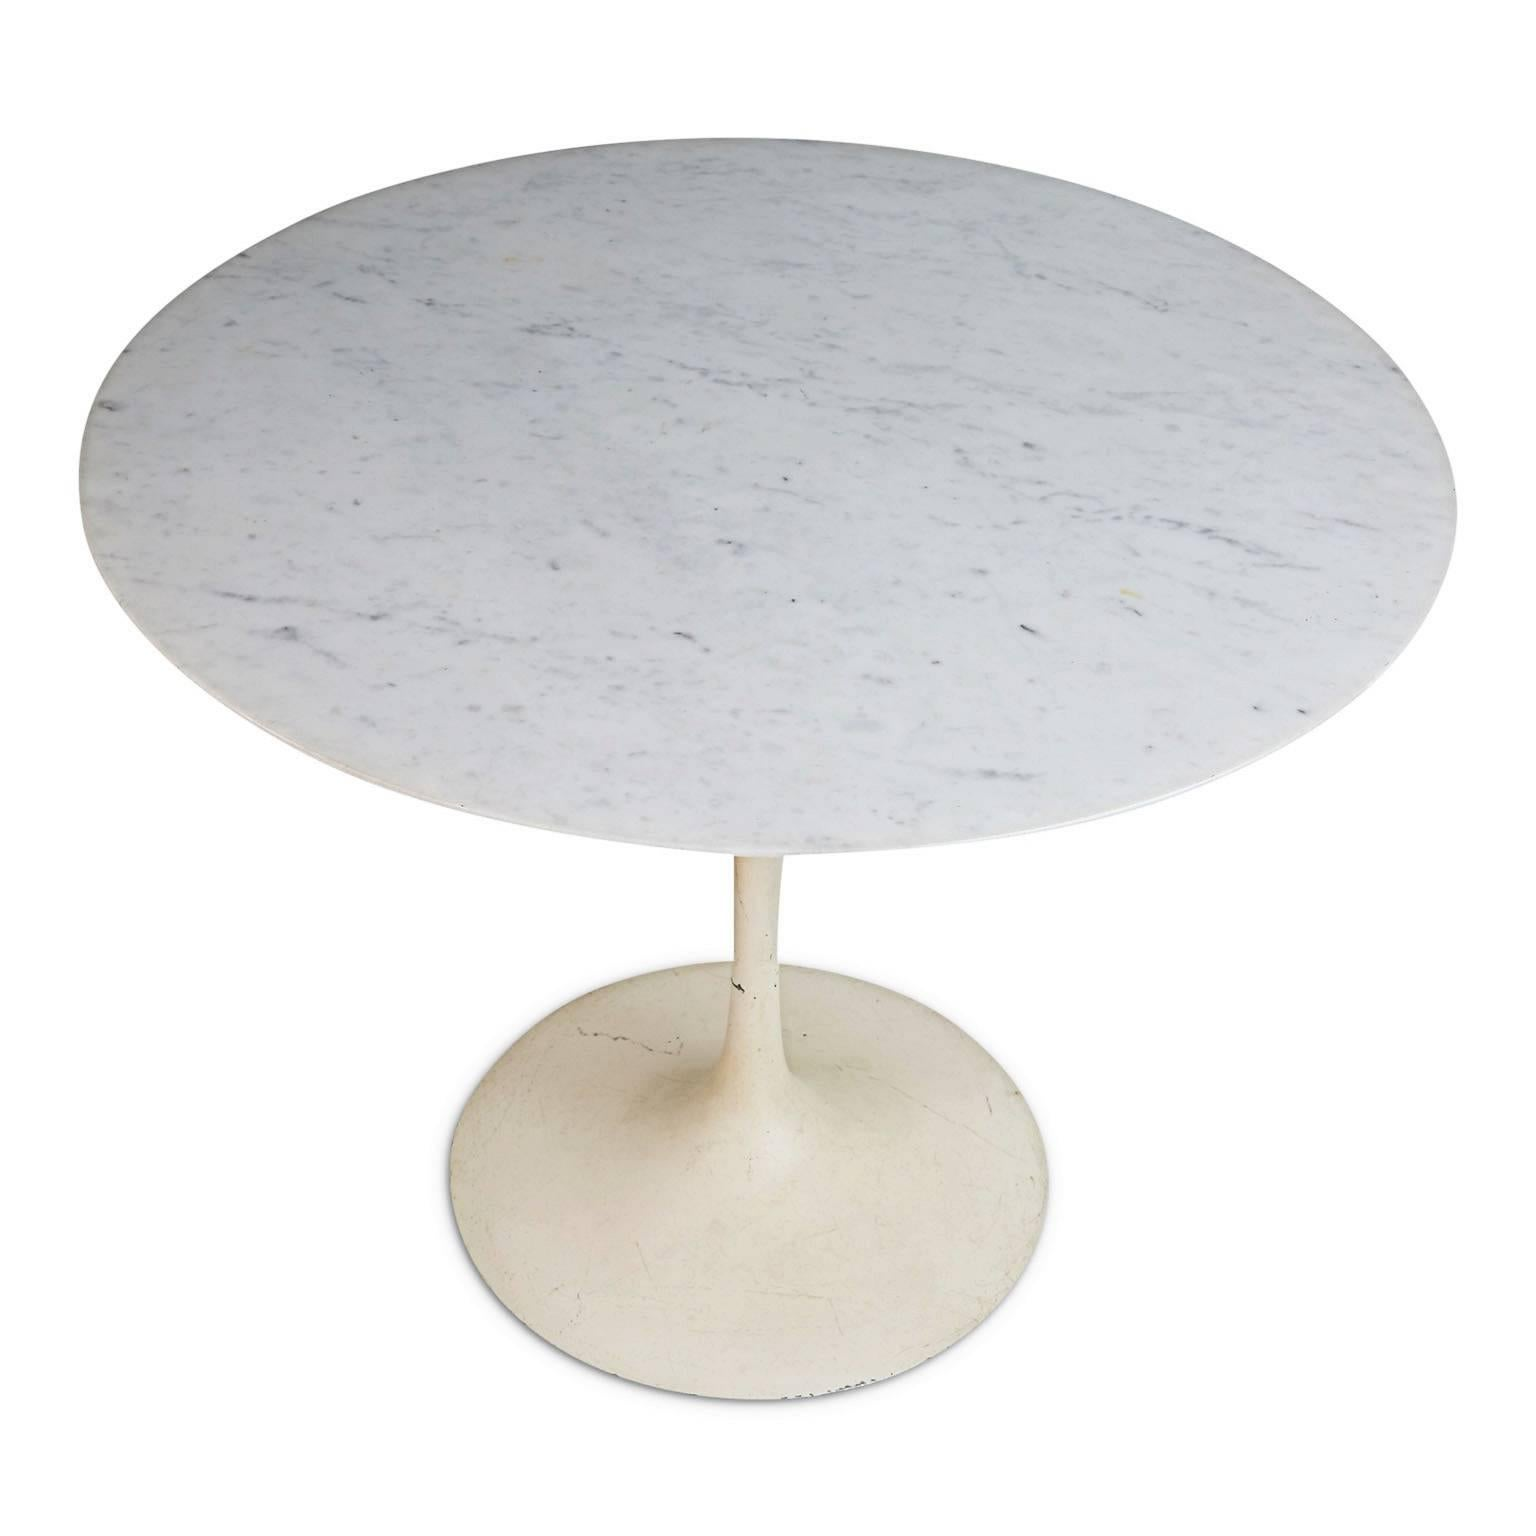 Very Elegant Marble Top Dining Table One of the most highly coveted vintage-designer items at present, this elegant  marble